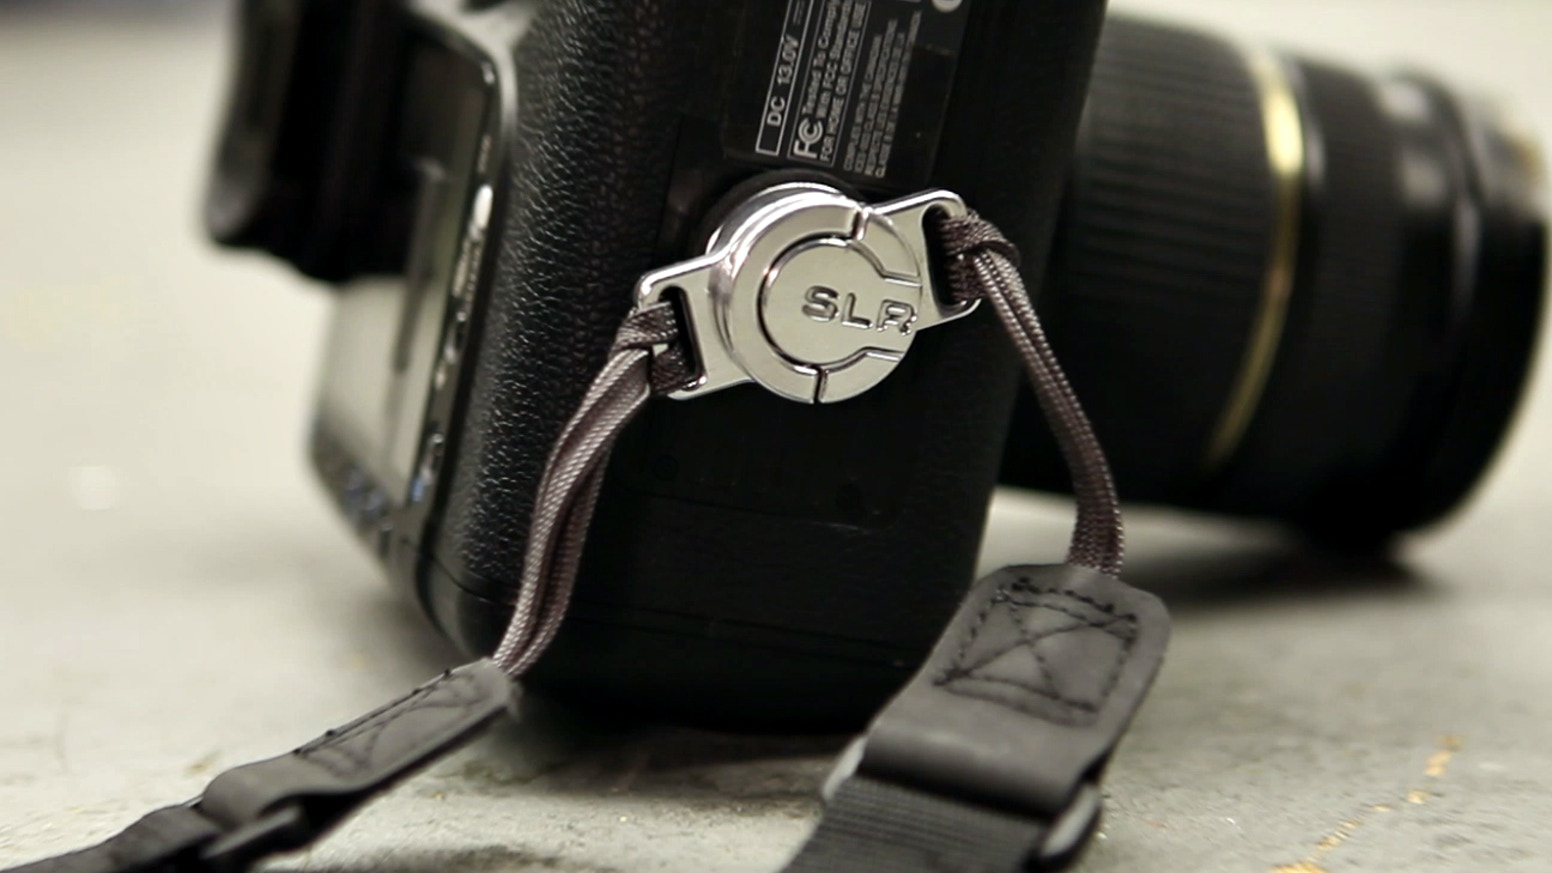 C-Loop is a camera strap solution that improves a photographer's shooting experience by eliminating strap interference.